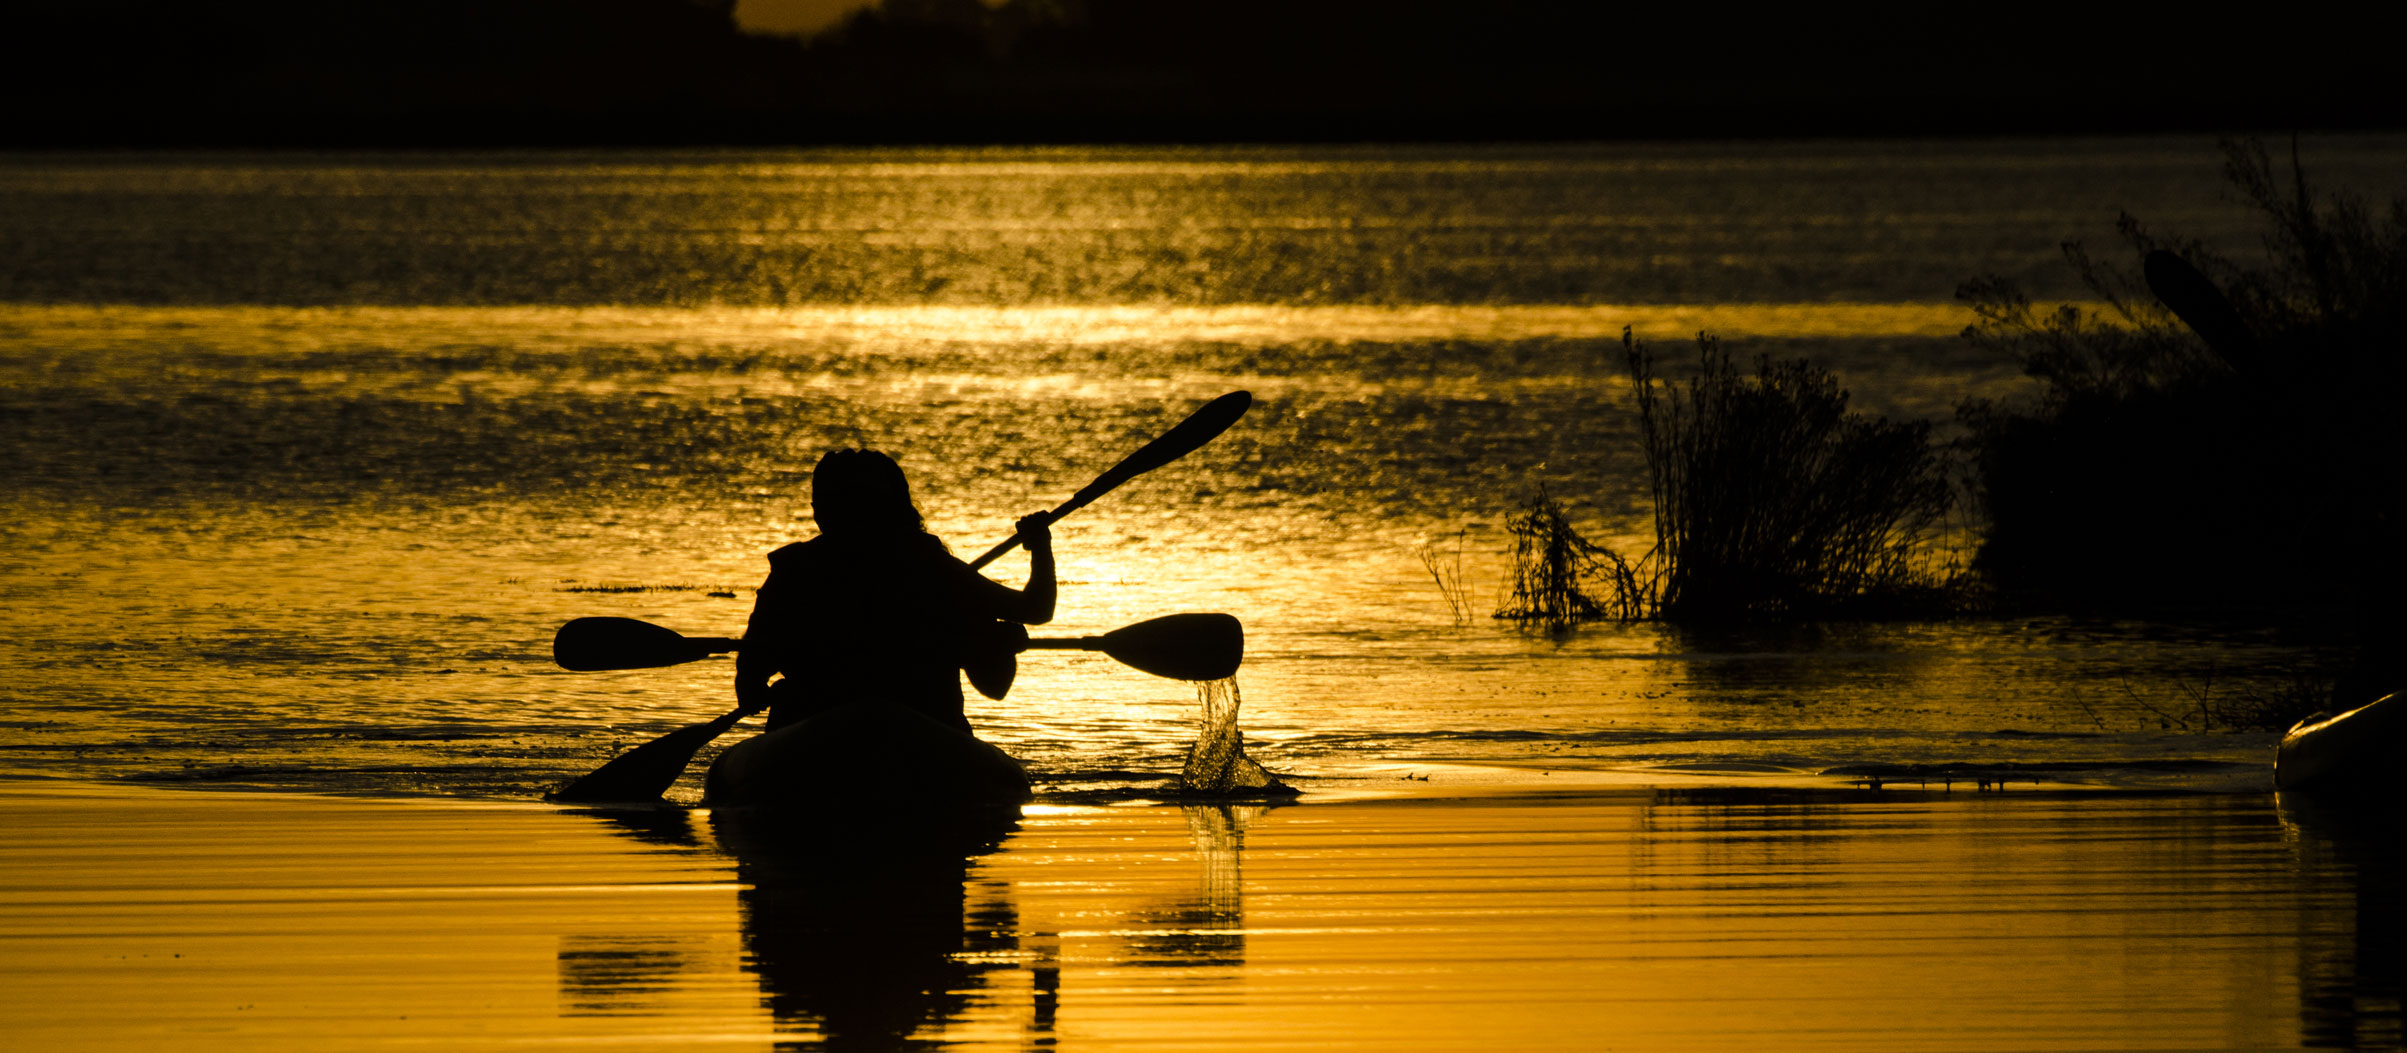 bigstock-Silhouettes-of-men-kayaking-in-596074131